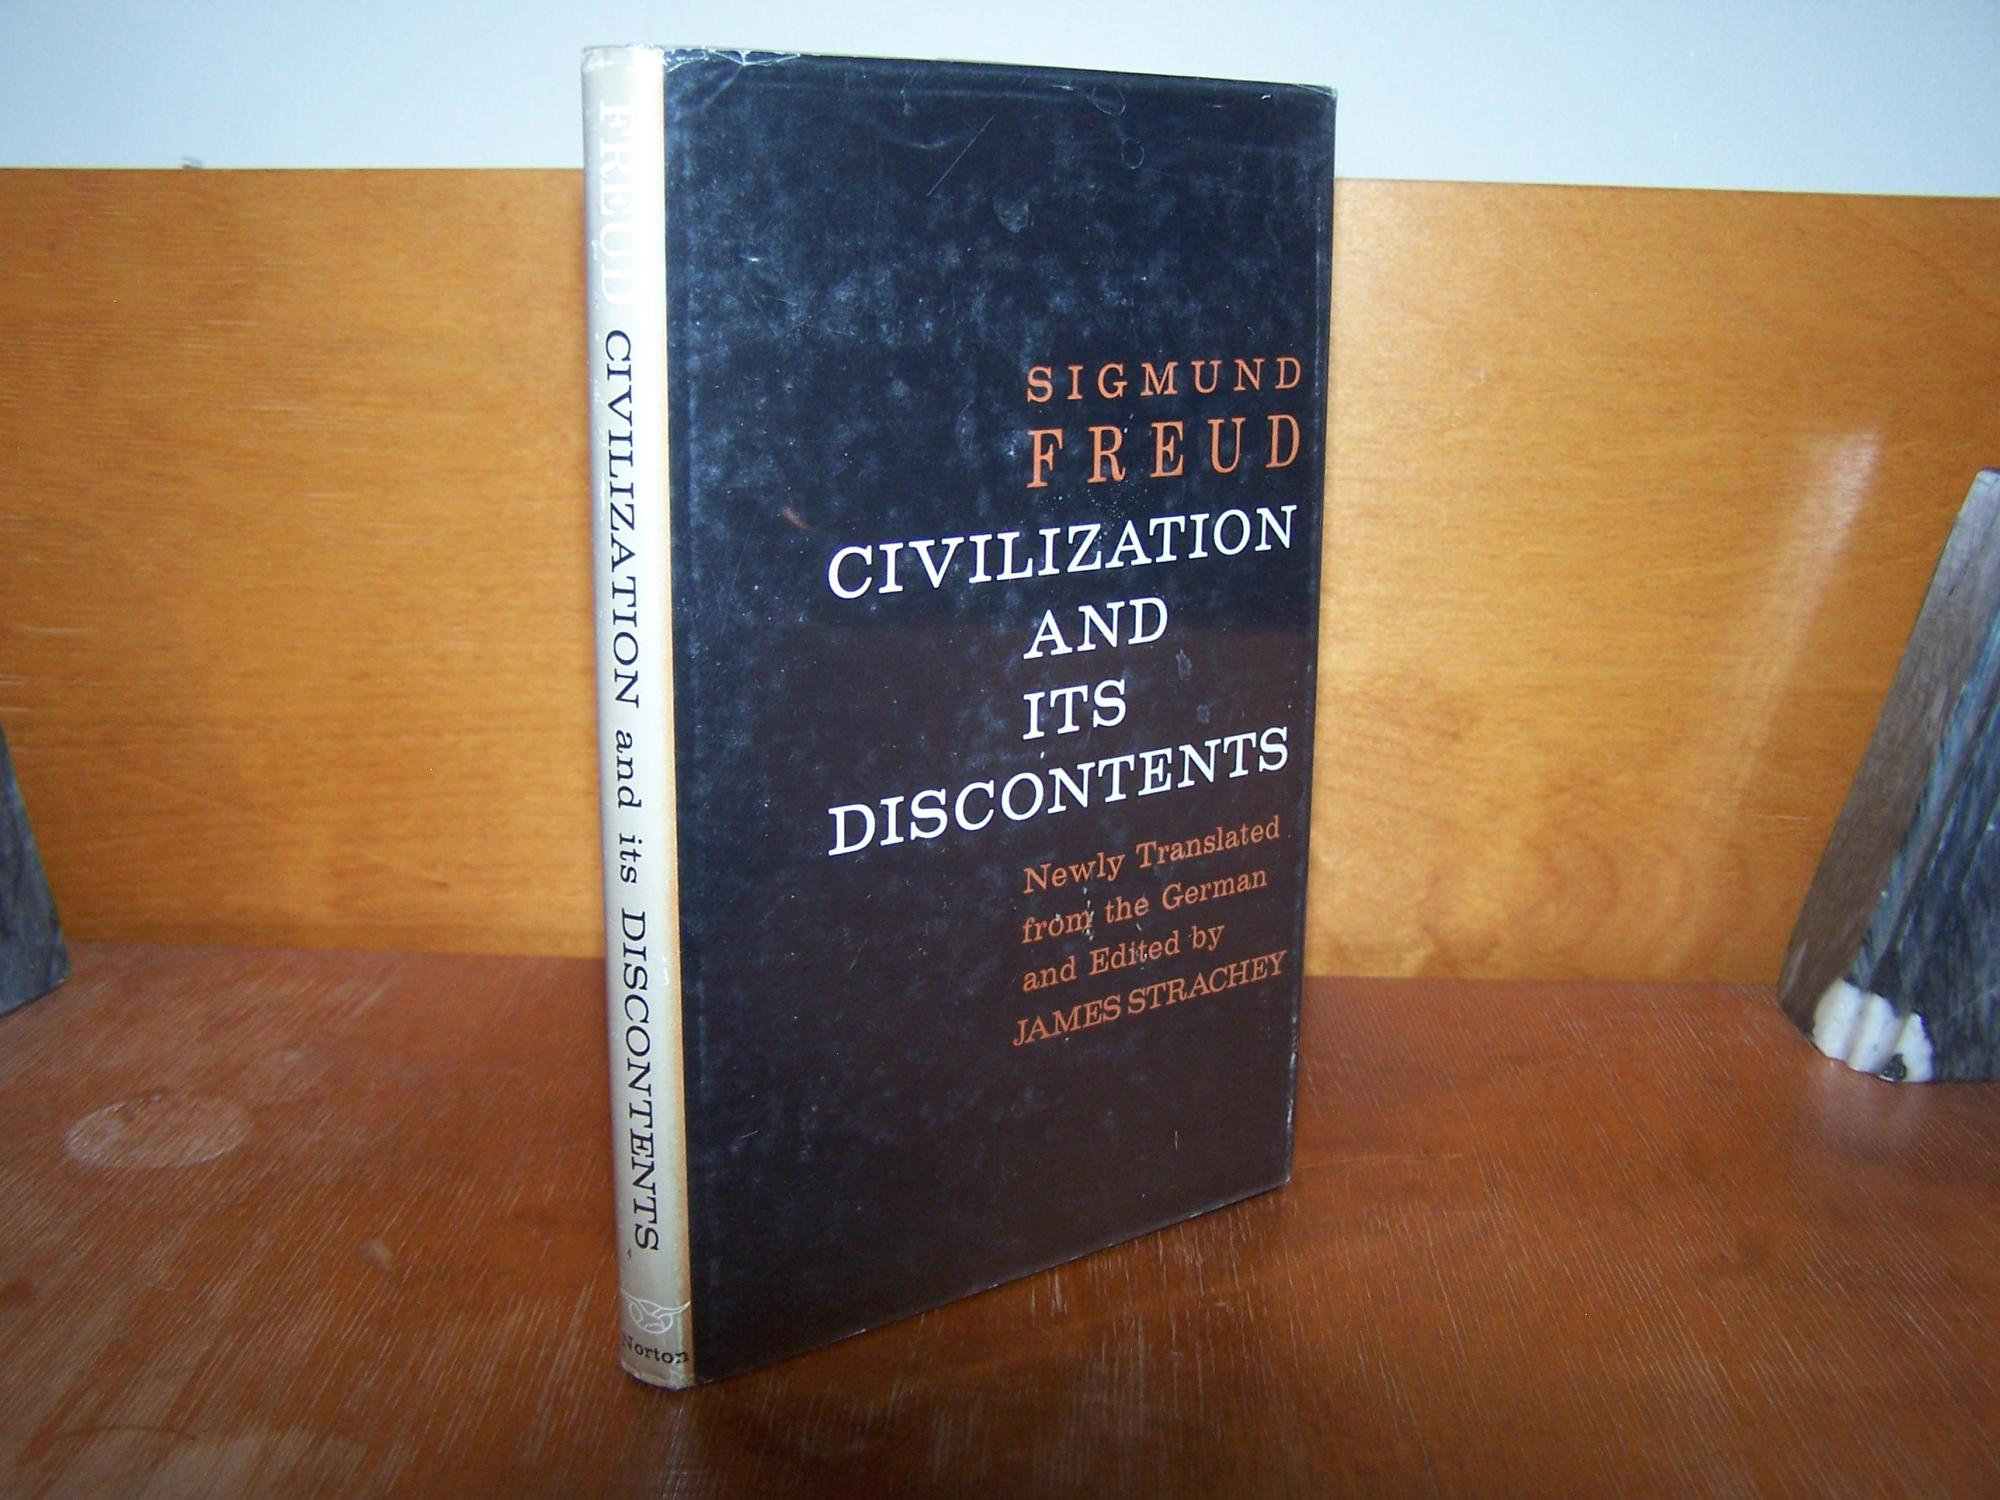 civilization critical discontents essay freud from its sigmund A brooding book that sounds the death knell for optimistic views on humanity's progress through civilization, civilization and its discontents begins with a recapitulation of freud's disdainful views on religion as a psychological salve and then goes on to challenge enduring platitudes about human.